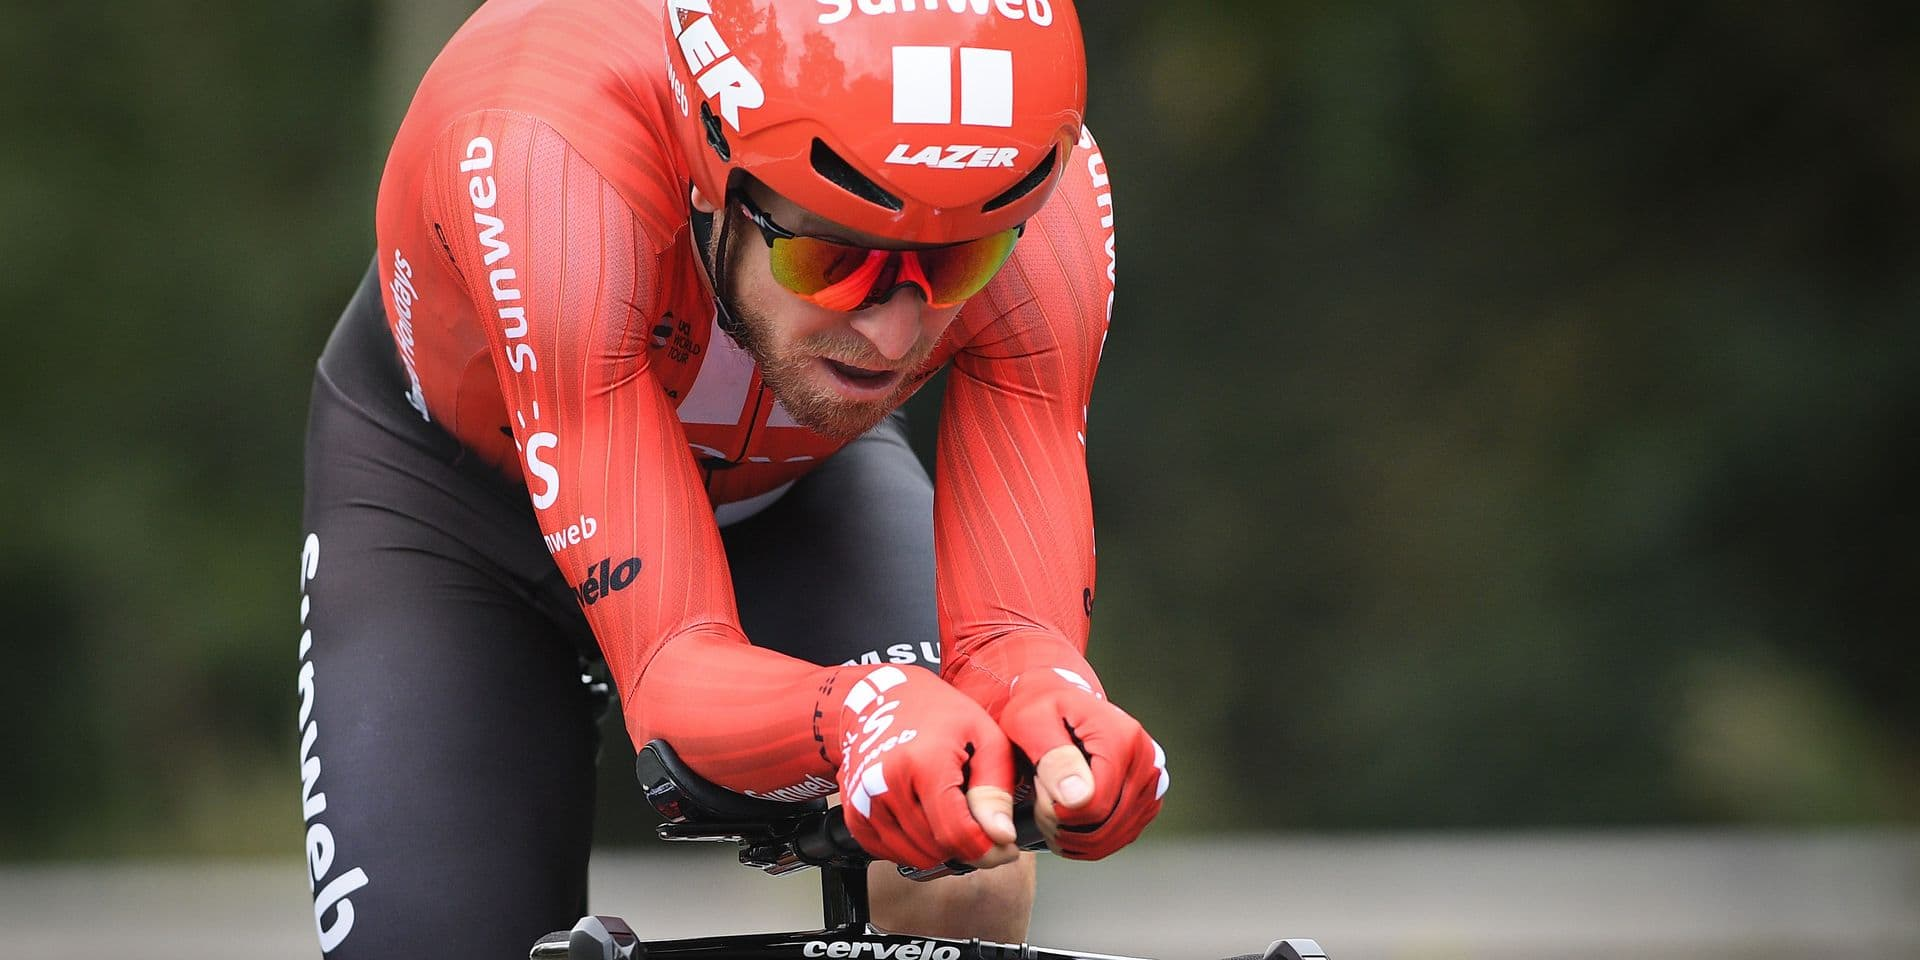 Belgian Jan Bakelants of Team Sunweb pictured in action during the sixth stage of the 'Binckbank Tour' cycling race, an individual time trial from Den Haag to Den Haag (8,4 km), Saturday 17 August 2019. BELGA PHOTO DAVID STOCKMAN